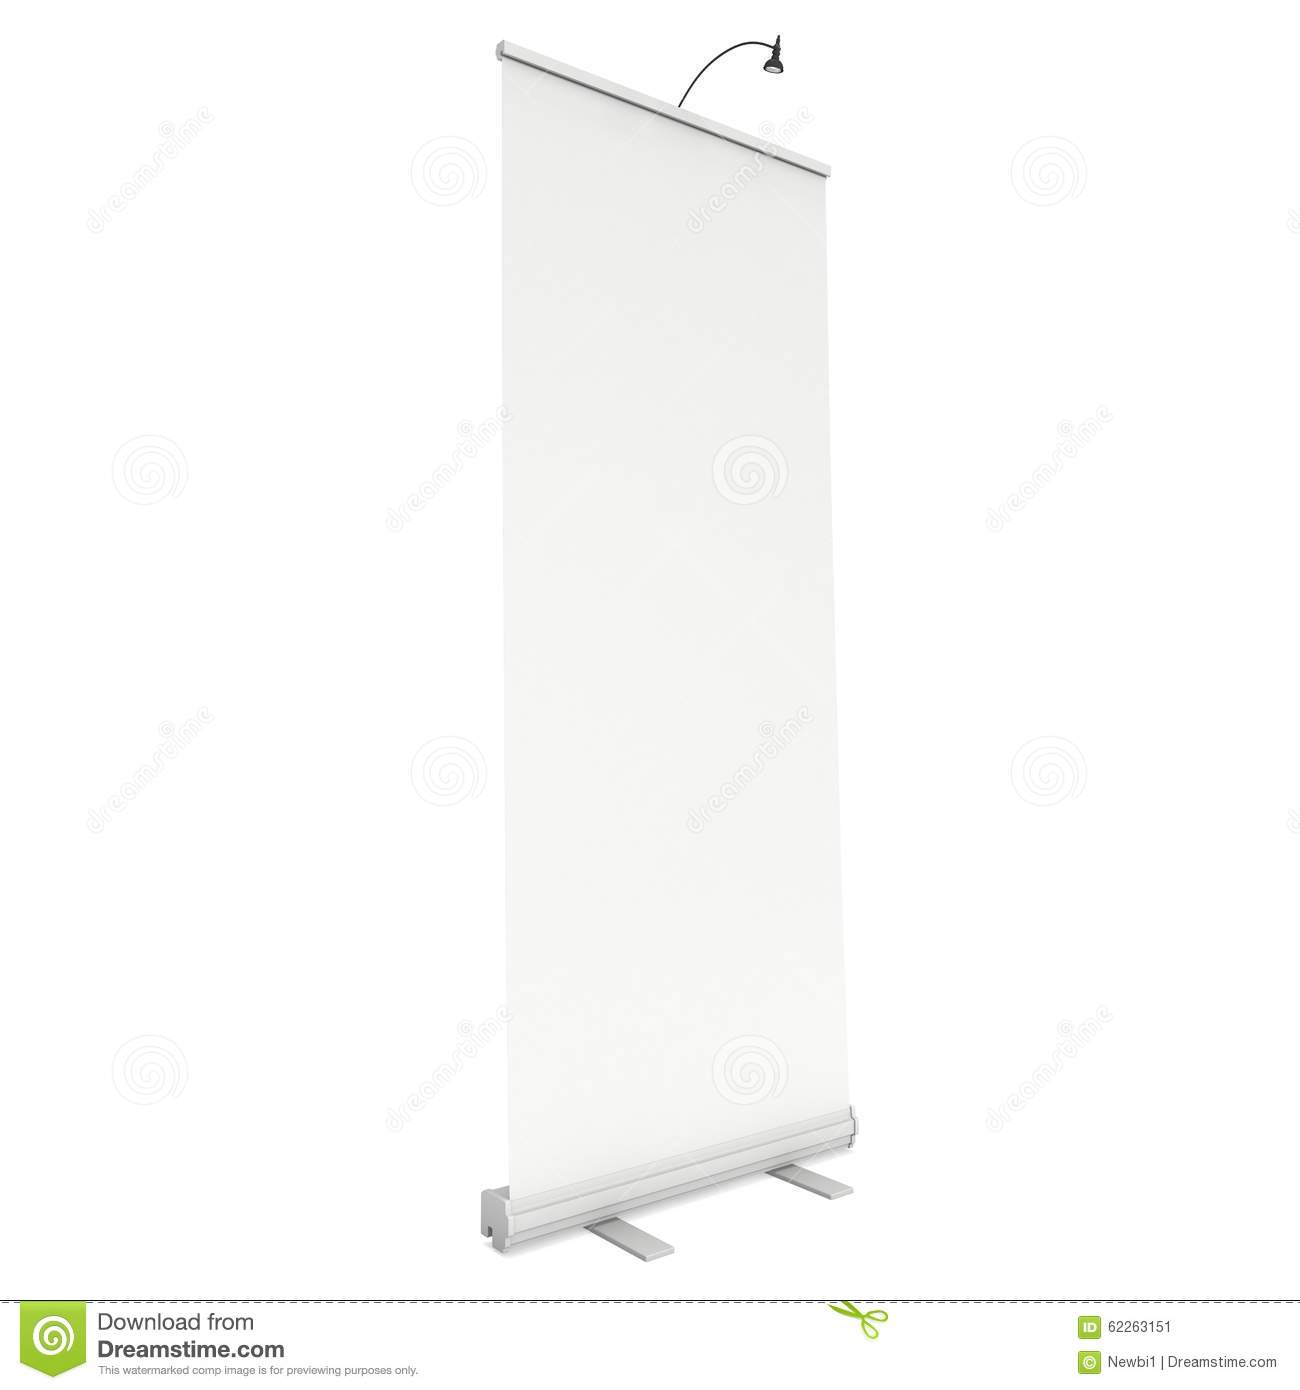 Exhibition Booth Vector Free Download : Blank roll up banner stand stock illustration image of